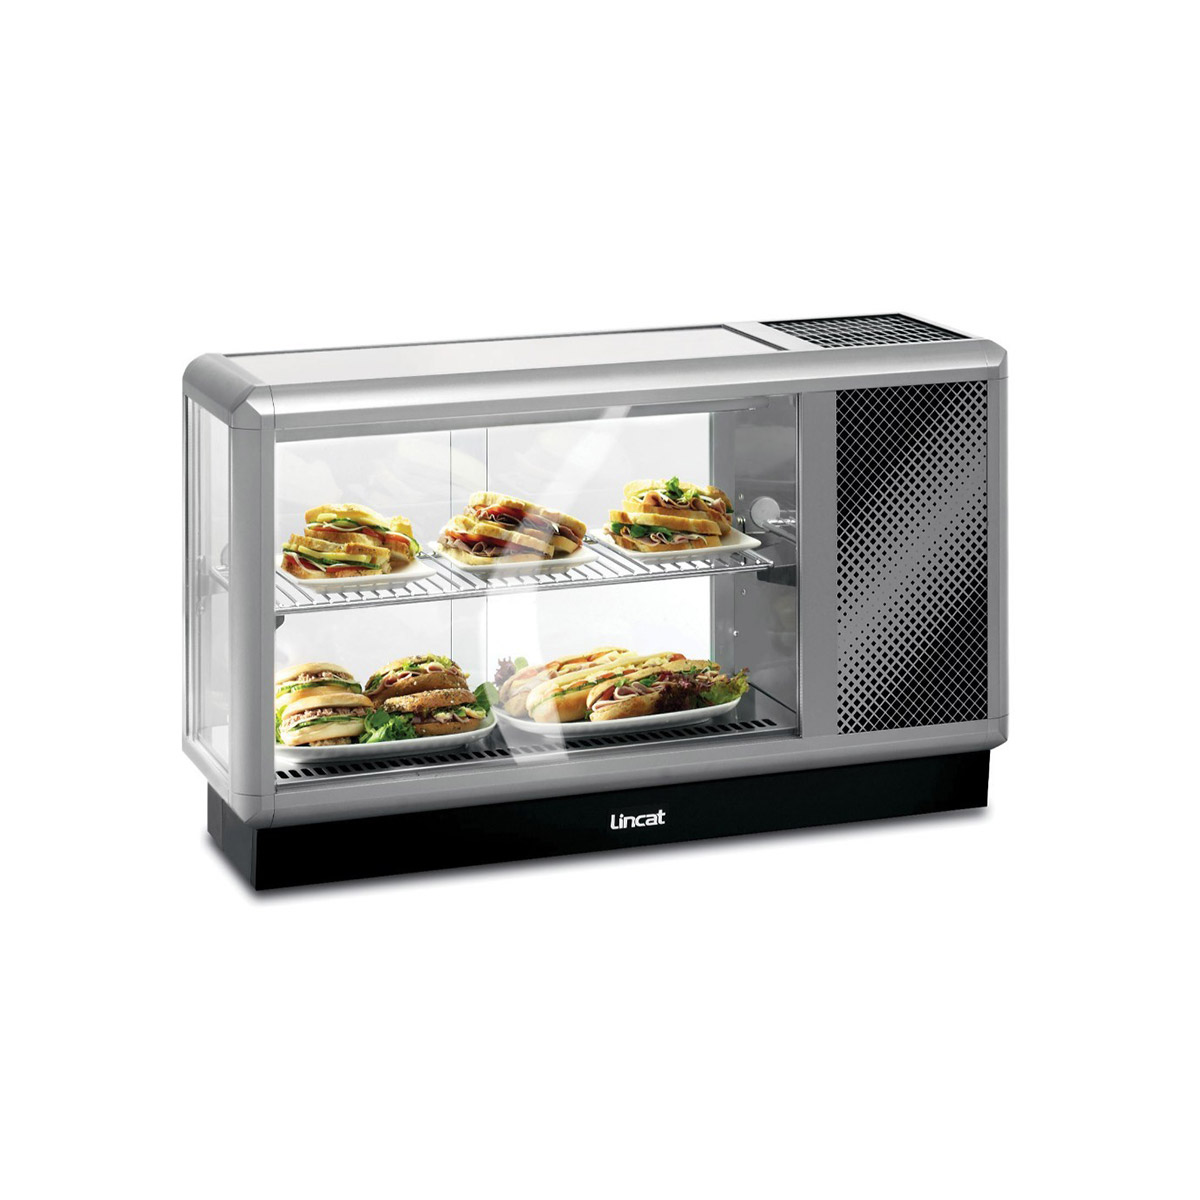 D3R/100 - Lincat Seal 350 Series Counter-top Refrigerated Merchandiser - W 1000 mm - 0.39 kW